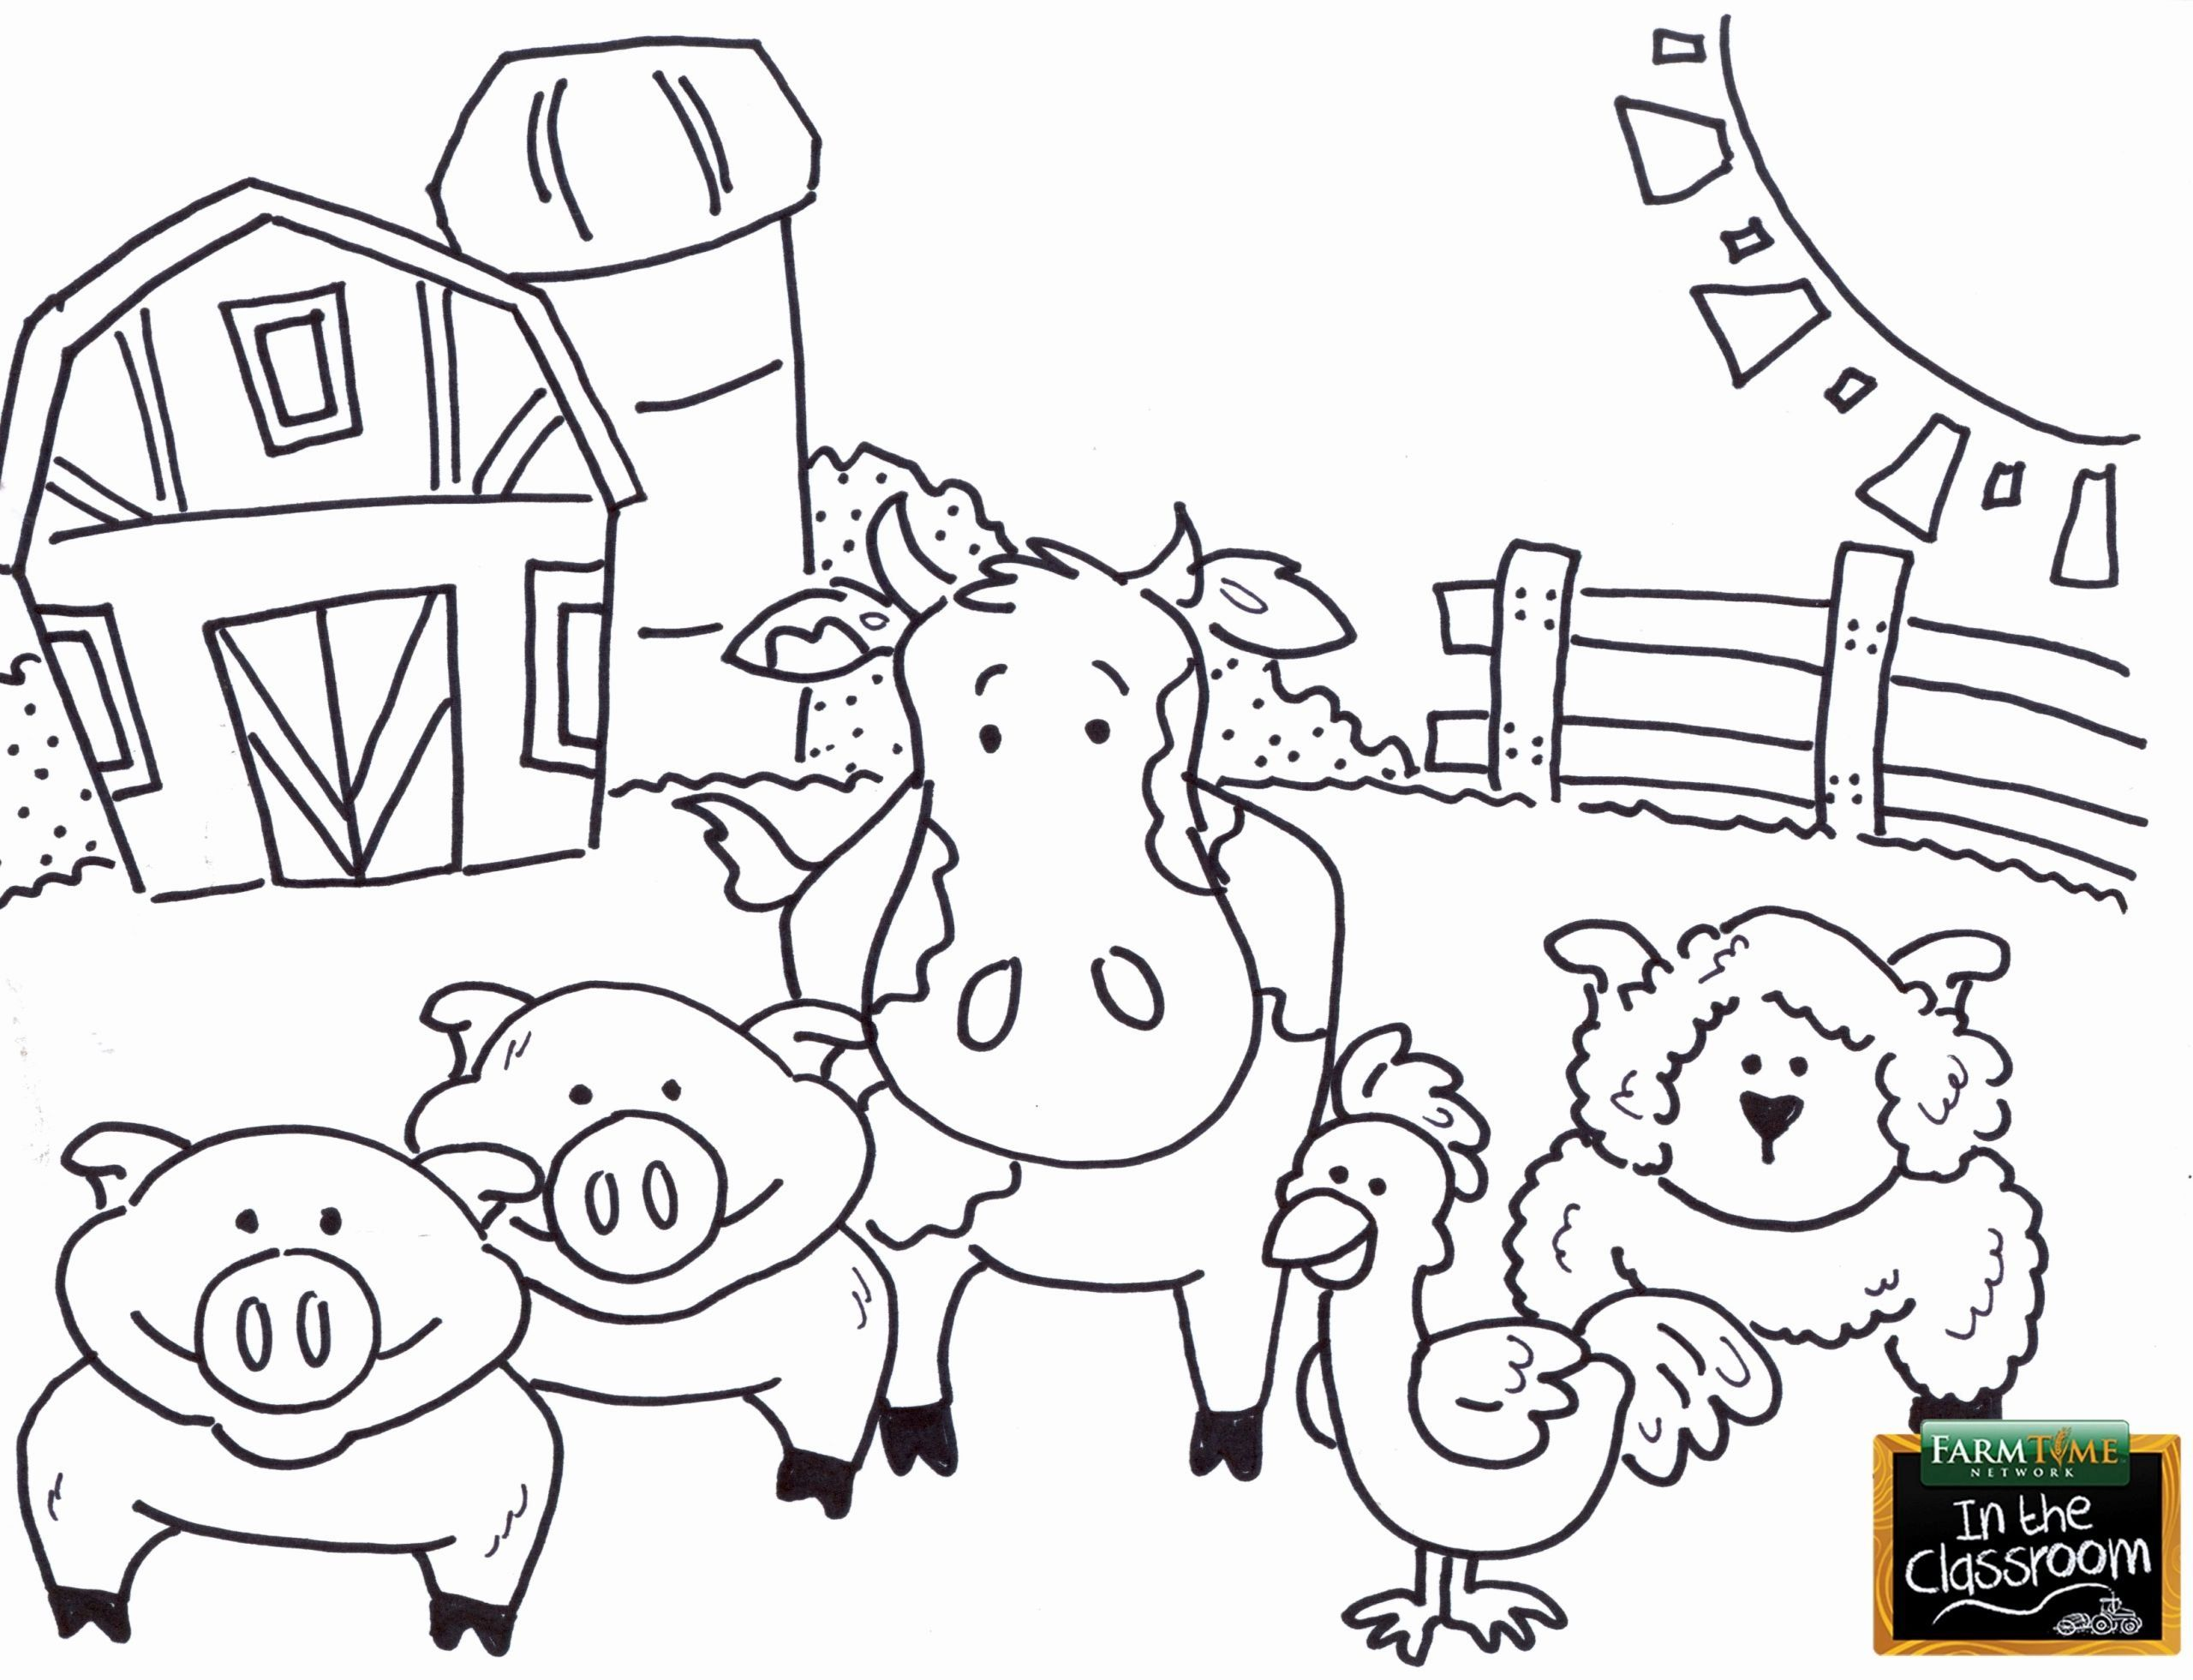 Barnyard Animal Coloring Pages In 2020 Farm Coloring Pages Farm